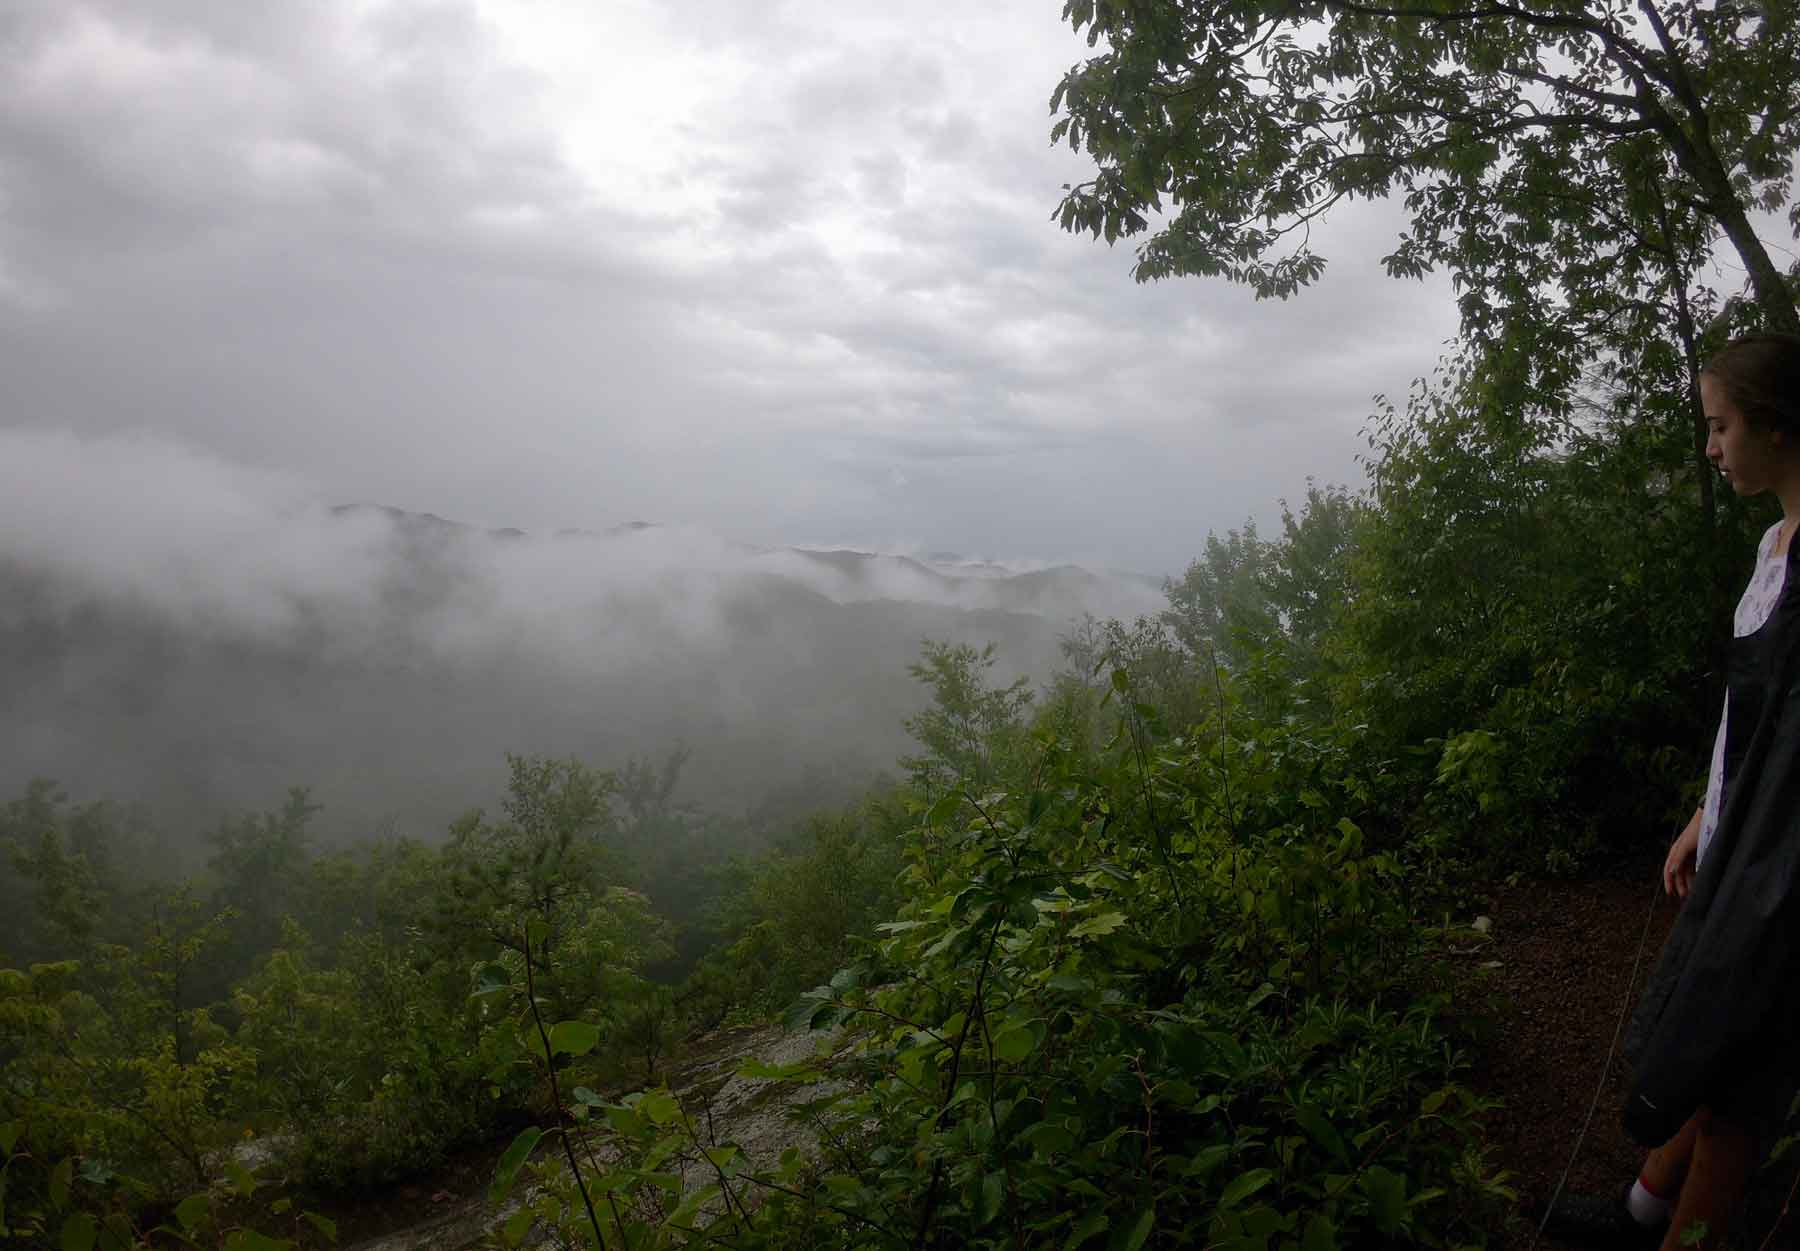 Raven Rock Trail Overlook on a misty afternoon in Roan Mountain State Park, Tennessee